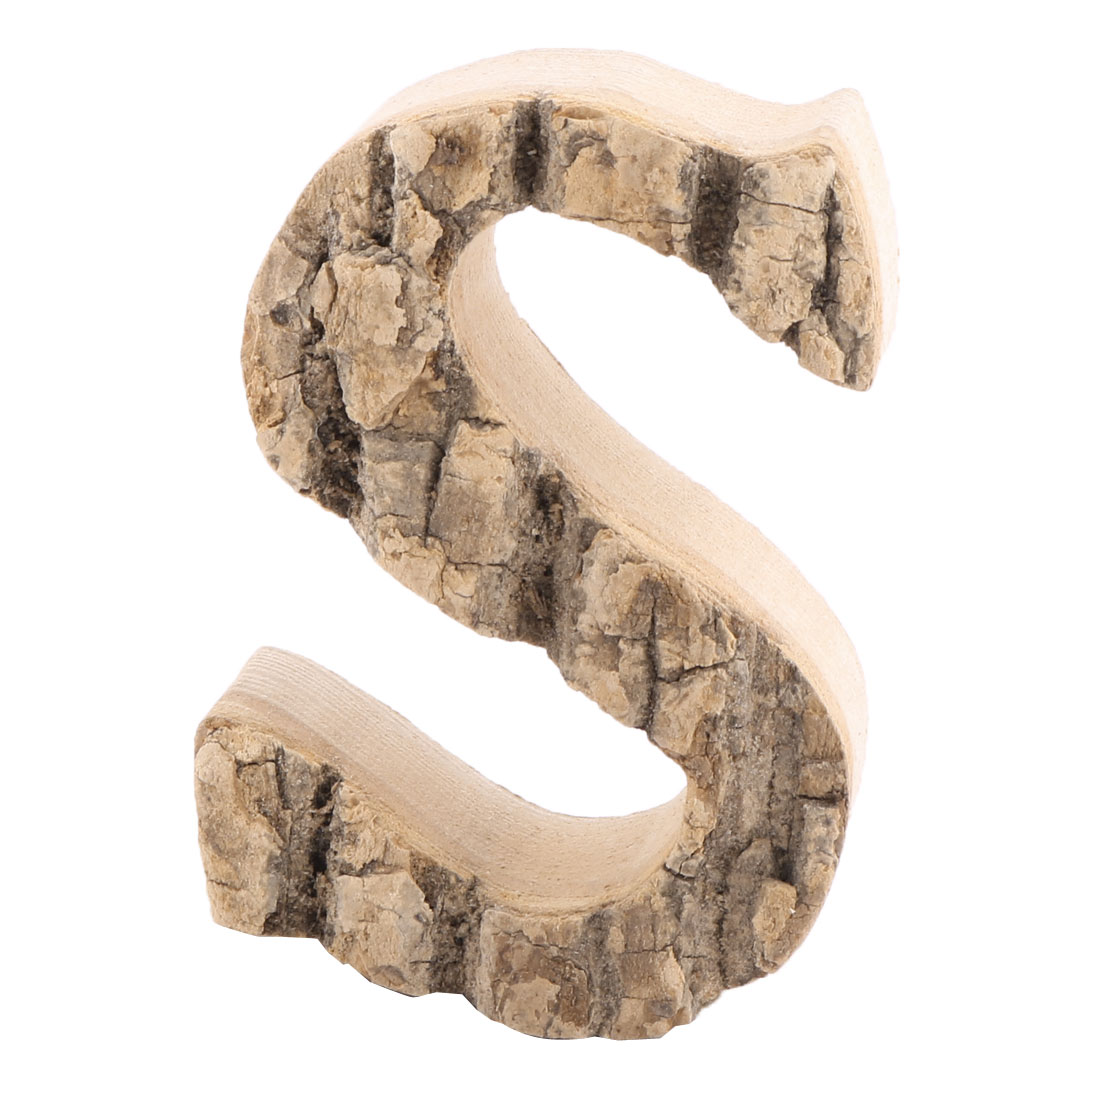 Family Street Wood S Shaped Retro Style Door Plate Letter Label Sign Wall Decor